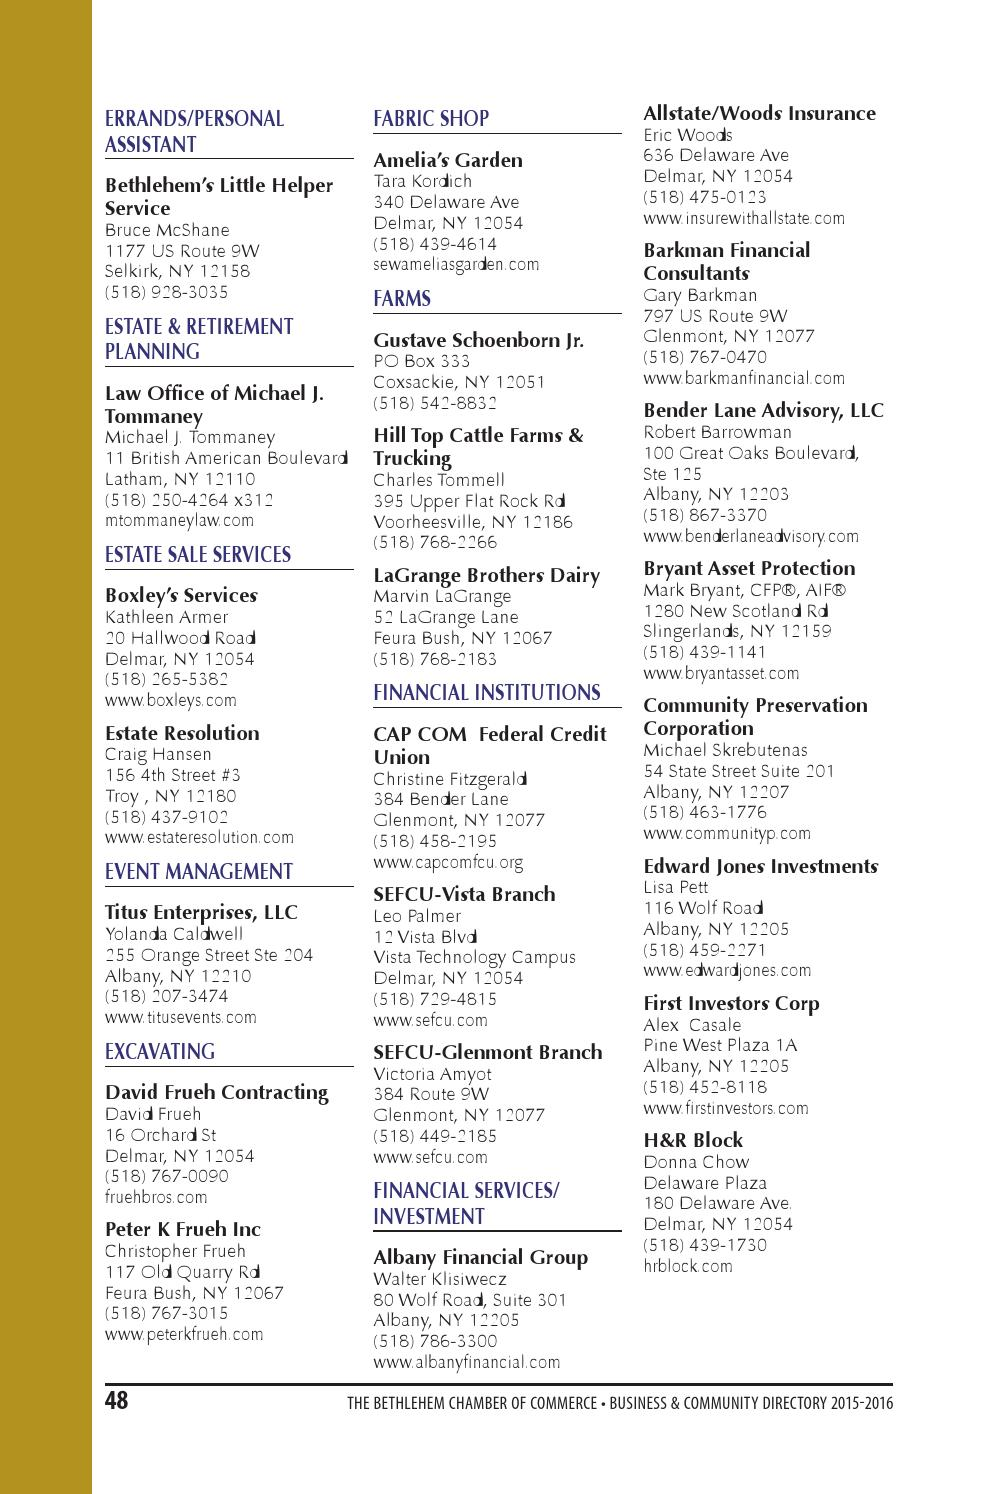 2015 bethlehem chamber directory by Spotlight Newspapers - issuu